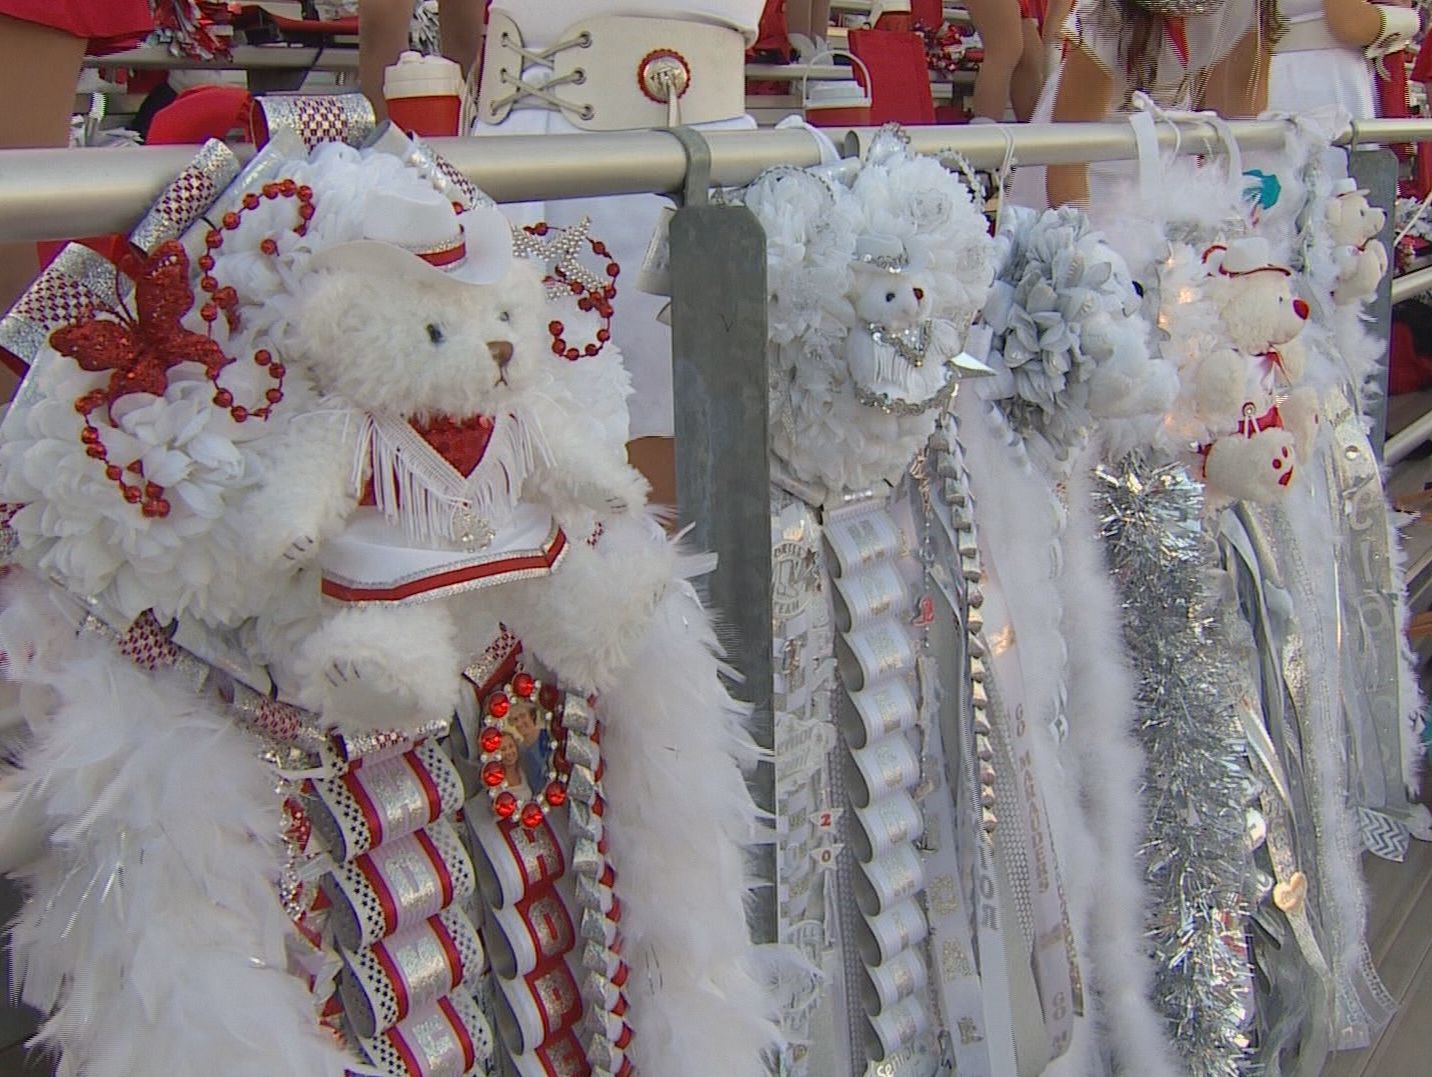 Mums hang on the fence at Flower Mound Marcus' football stadium